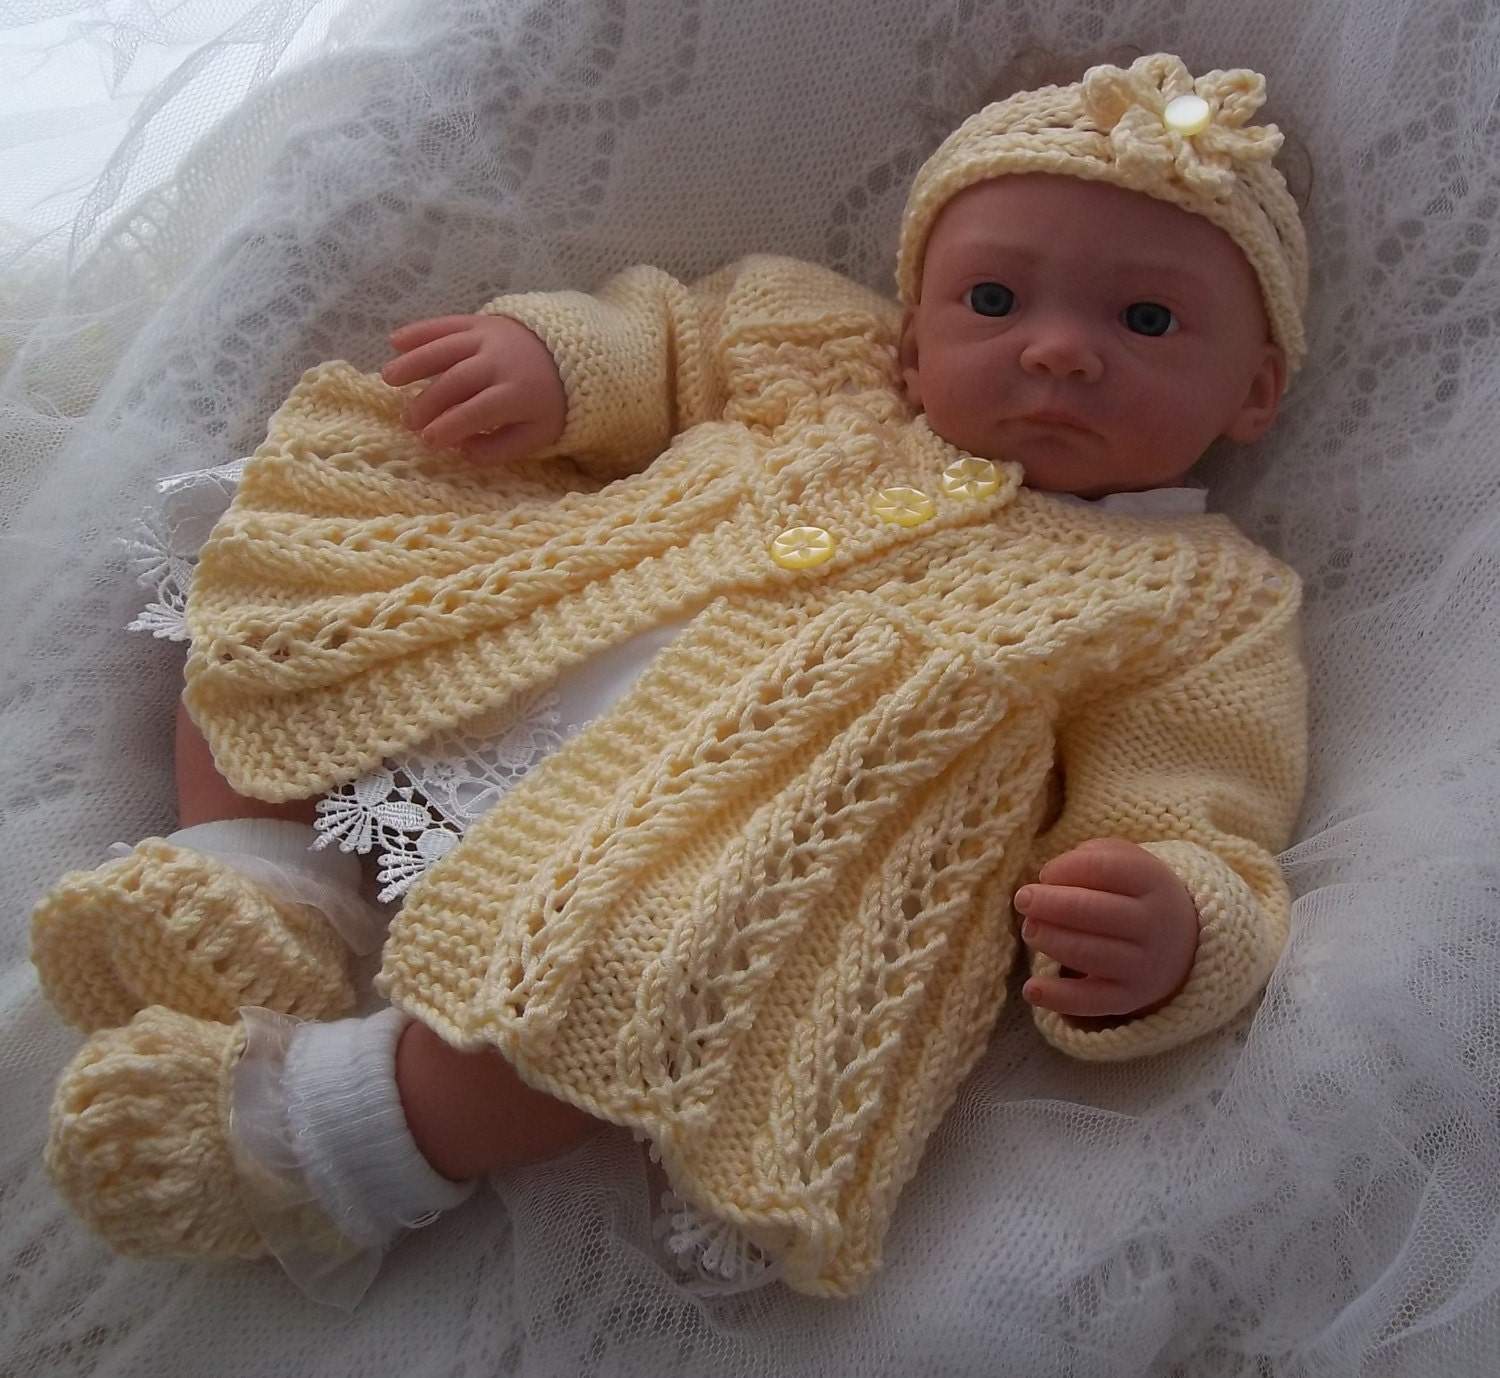 Knitting Patterns To Download For Babies : Baby Knitting Pattern Download Knitting Pattern Baby Girls